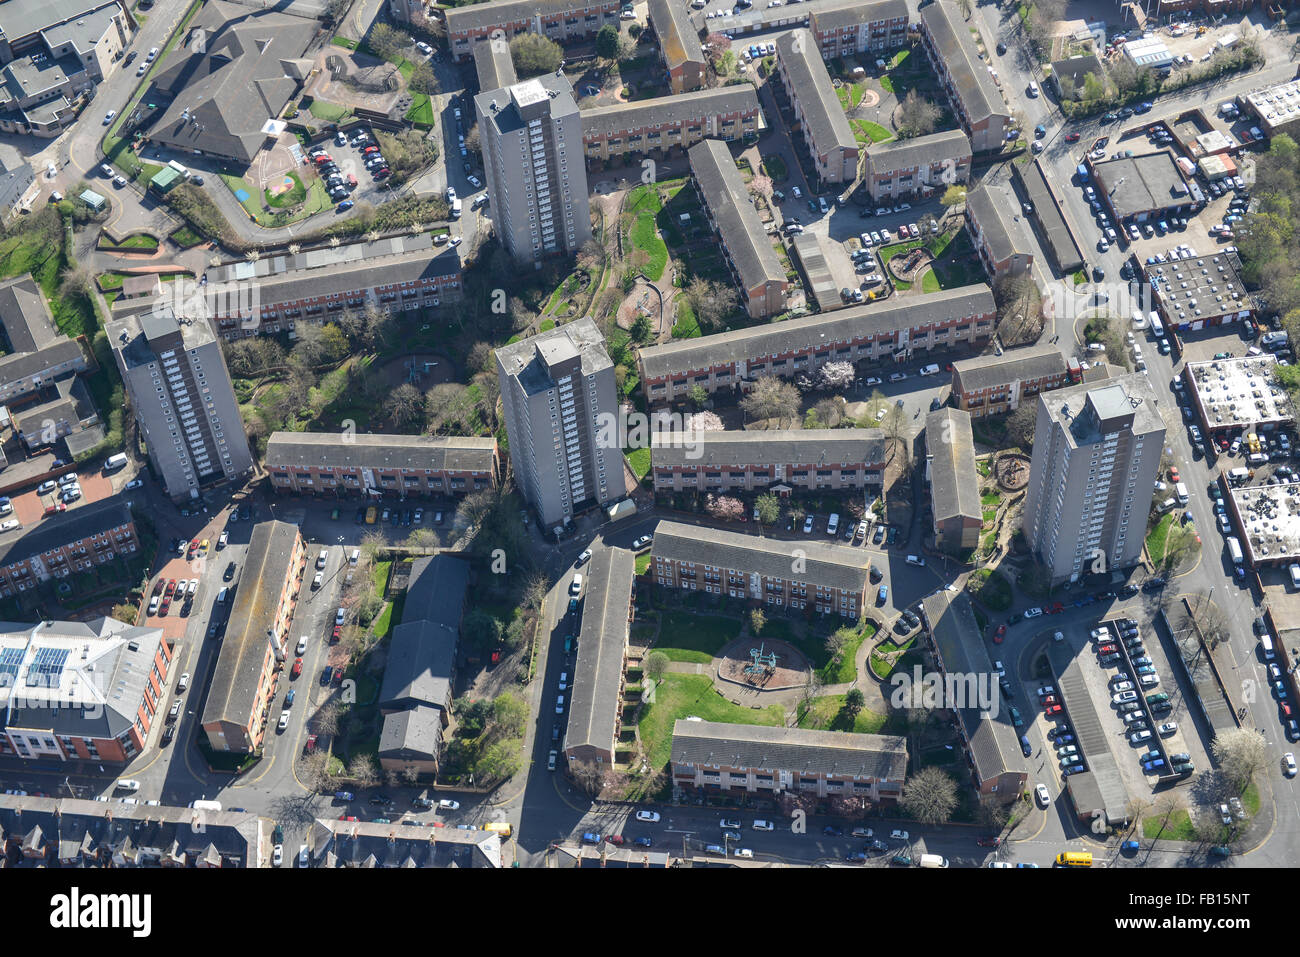 An aerial view of the inner-city area Spinney Hills in Leicester - Stock Image